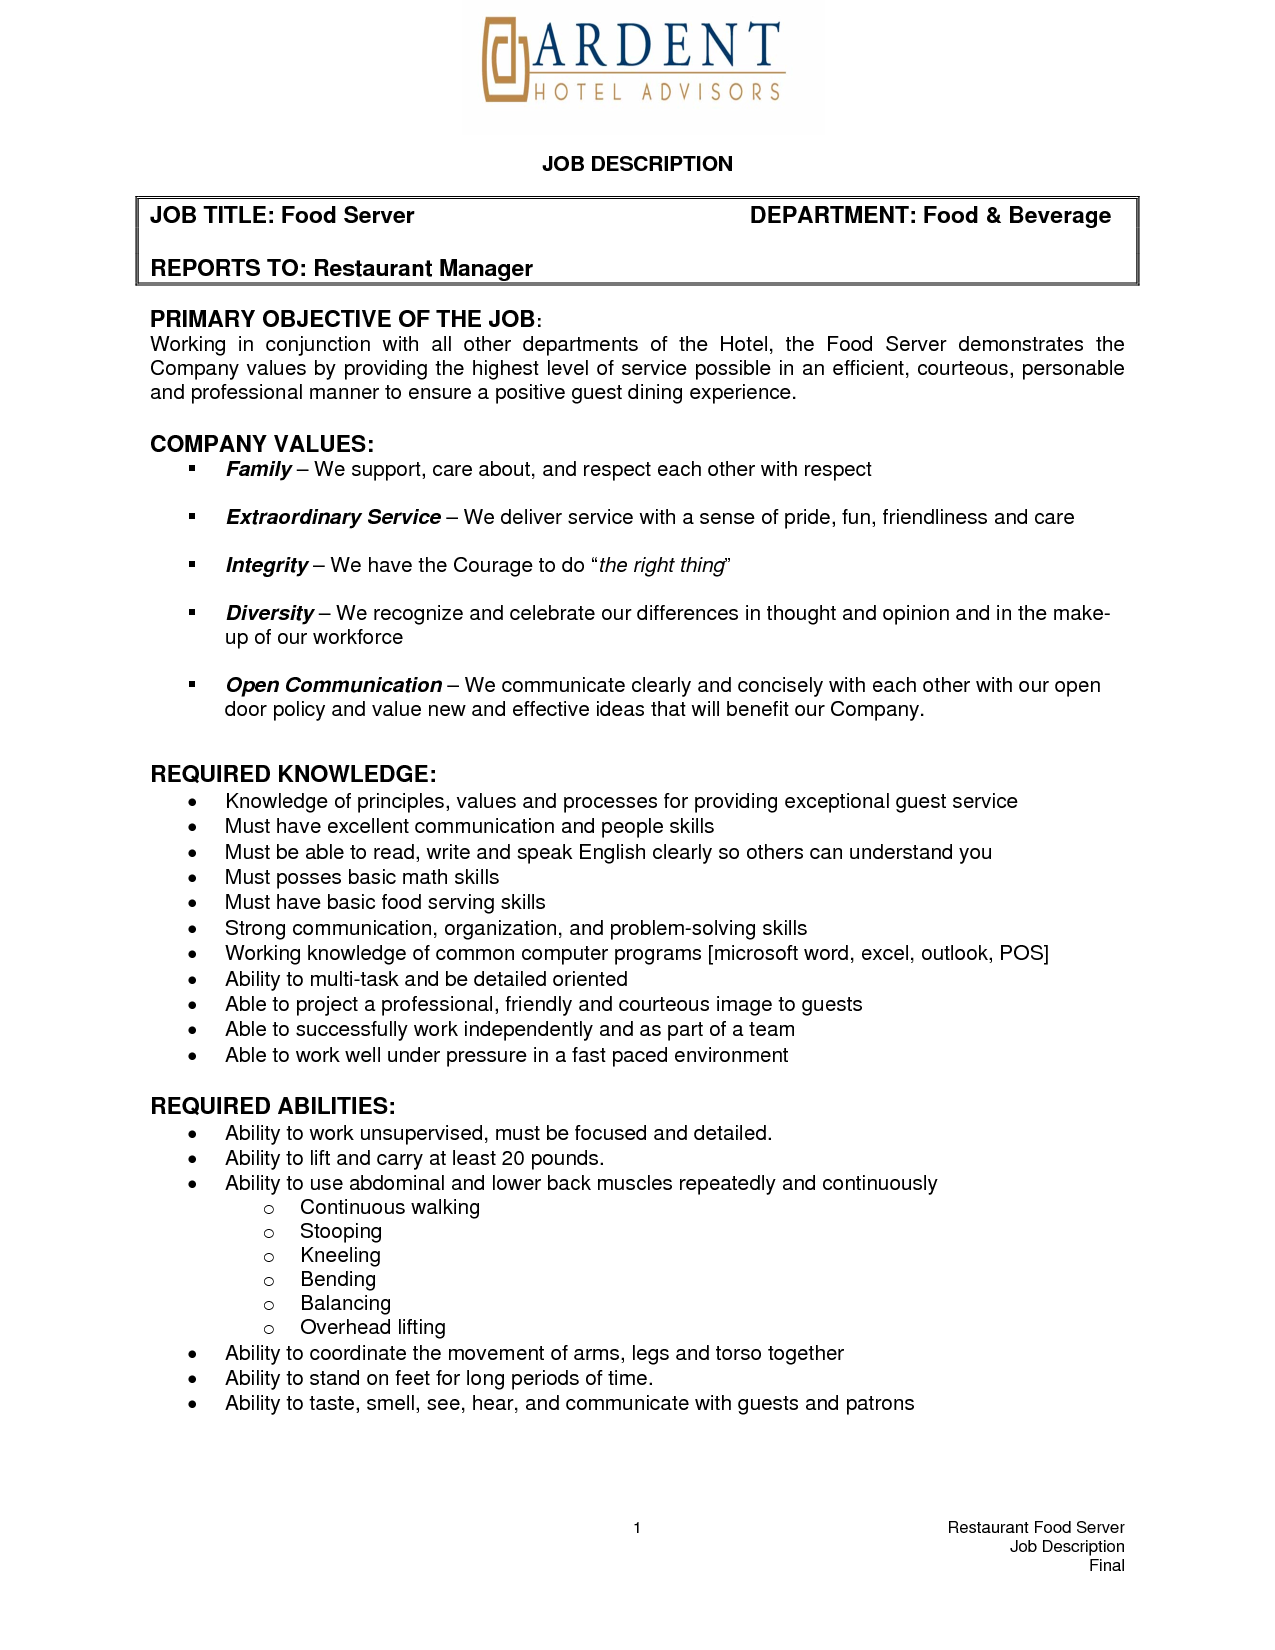 Server Job Description Resume Server Job Description